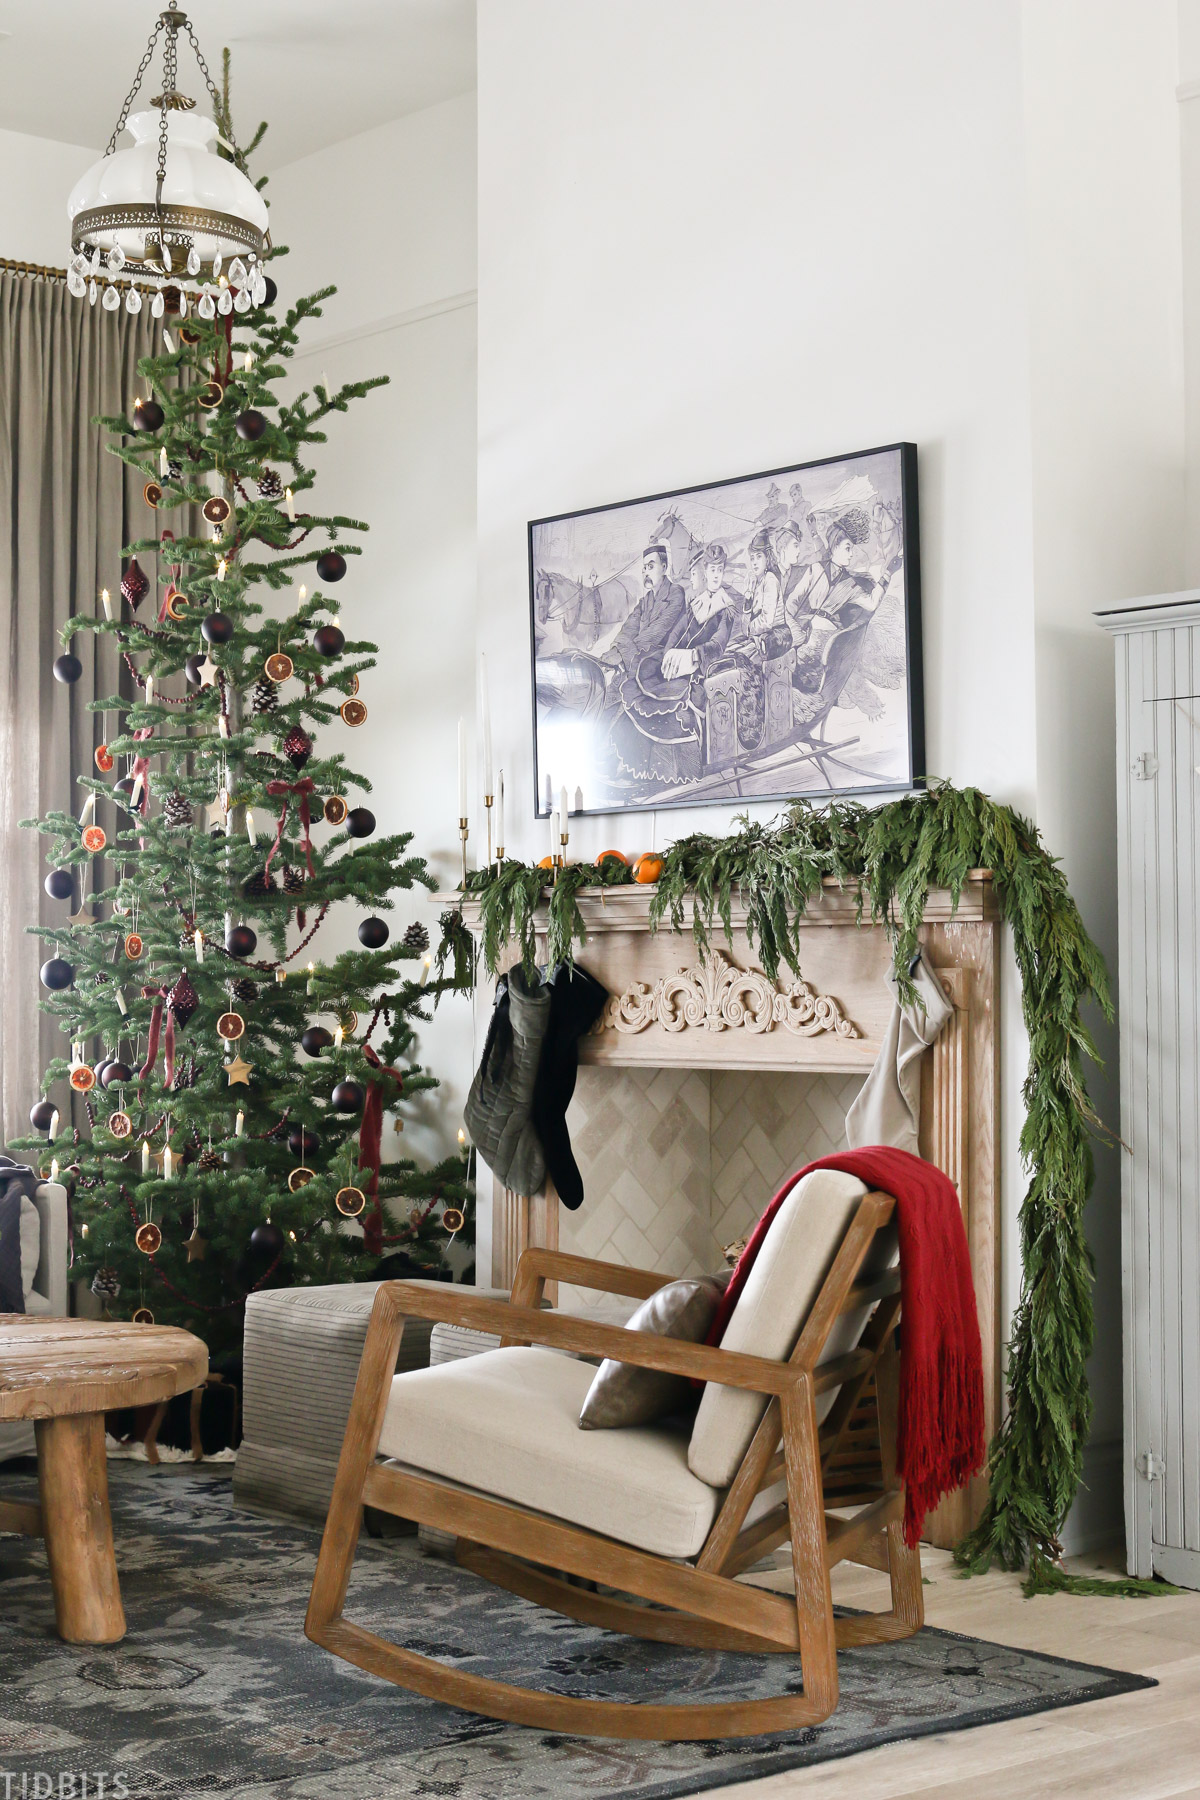 living room with European Old World Christmas decorations with arm chair, coffee table, and mantel with TV mounted to the wall